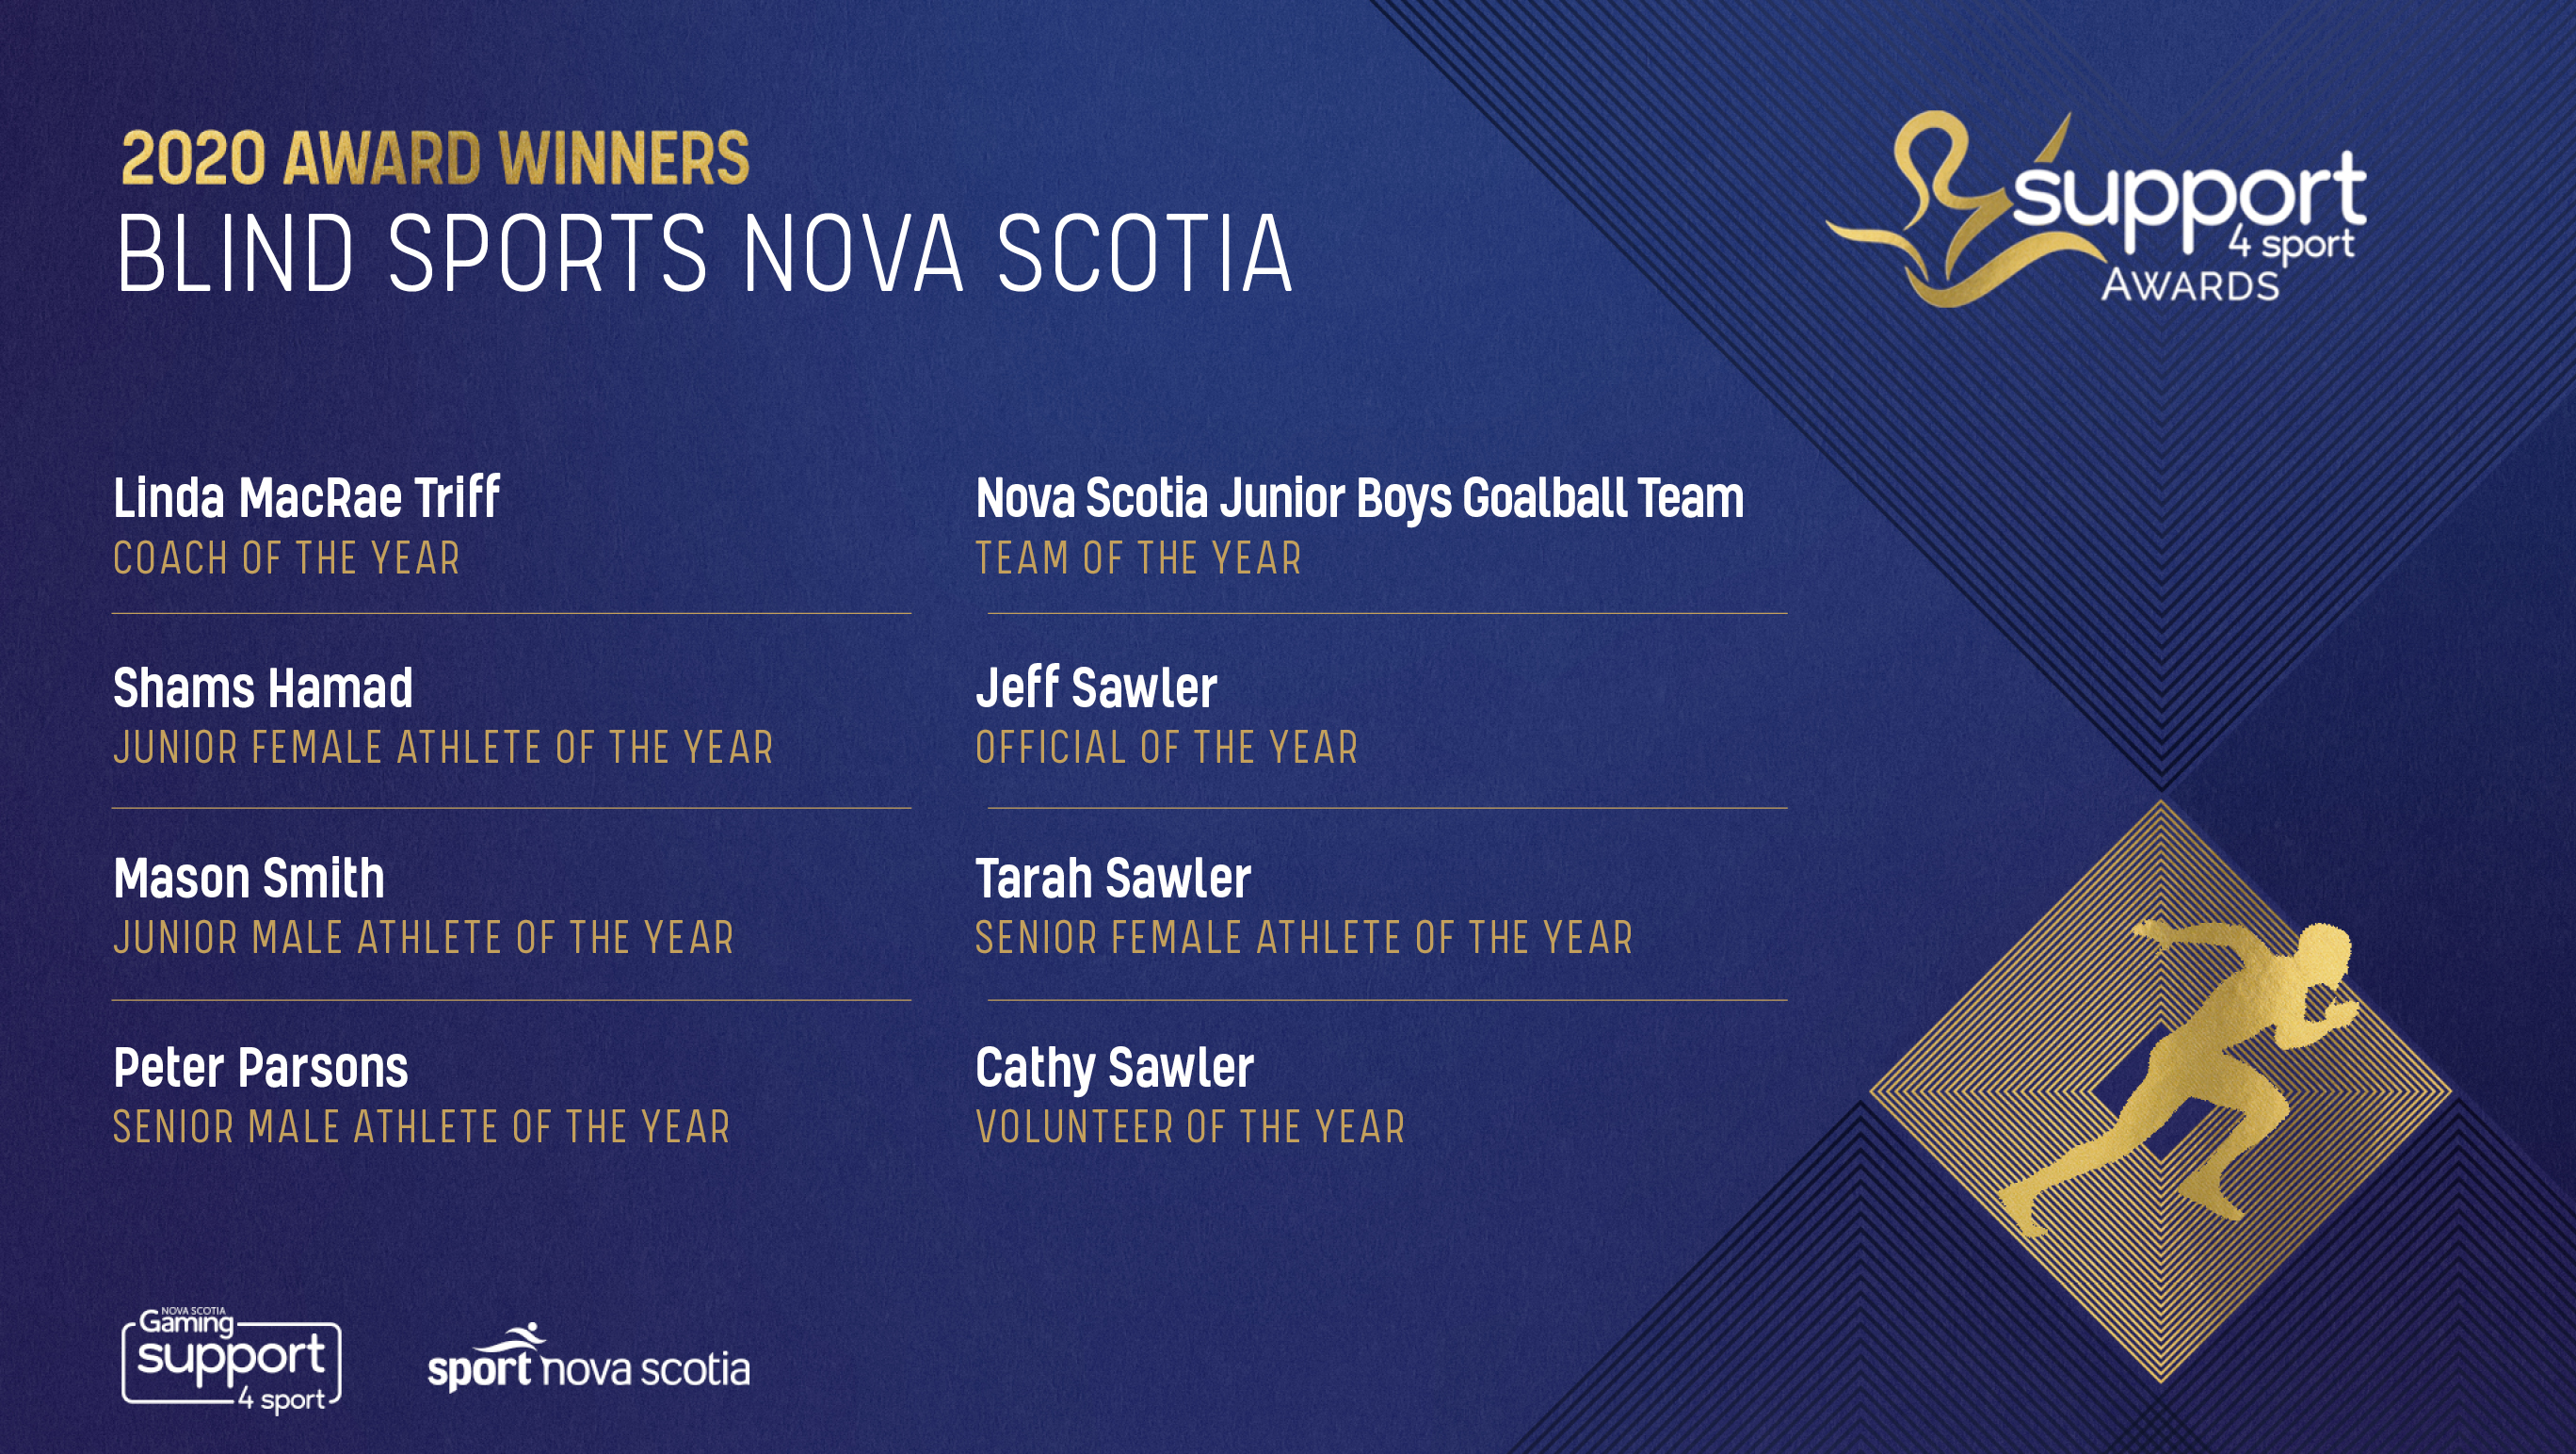 2020 Award Winners Support4Sport Blind Sports Nova Scotia  Nova Scotia Junior Boys Goalball Team - Team of the Year and OVERALL Finalists!!  Linda MacRae Triff - Coach of the Year  Shams Hamad - Junior Female Athlete of the Year  Mason Smith - Junior Male Athlete of the Year  Peter Parsons - Senior Male Athlete of the Year Tarah Sawler - Senior Female Athlete of the Year  Cathy Sawler - Volunteer of the Year